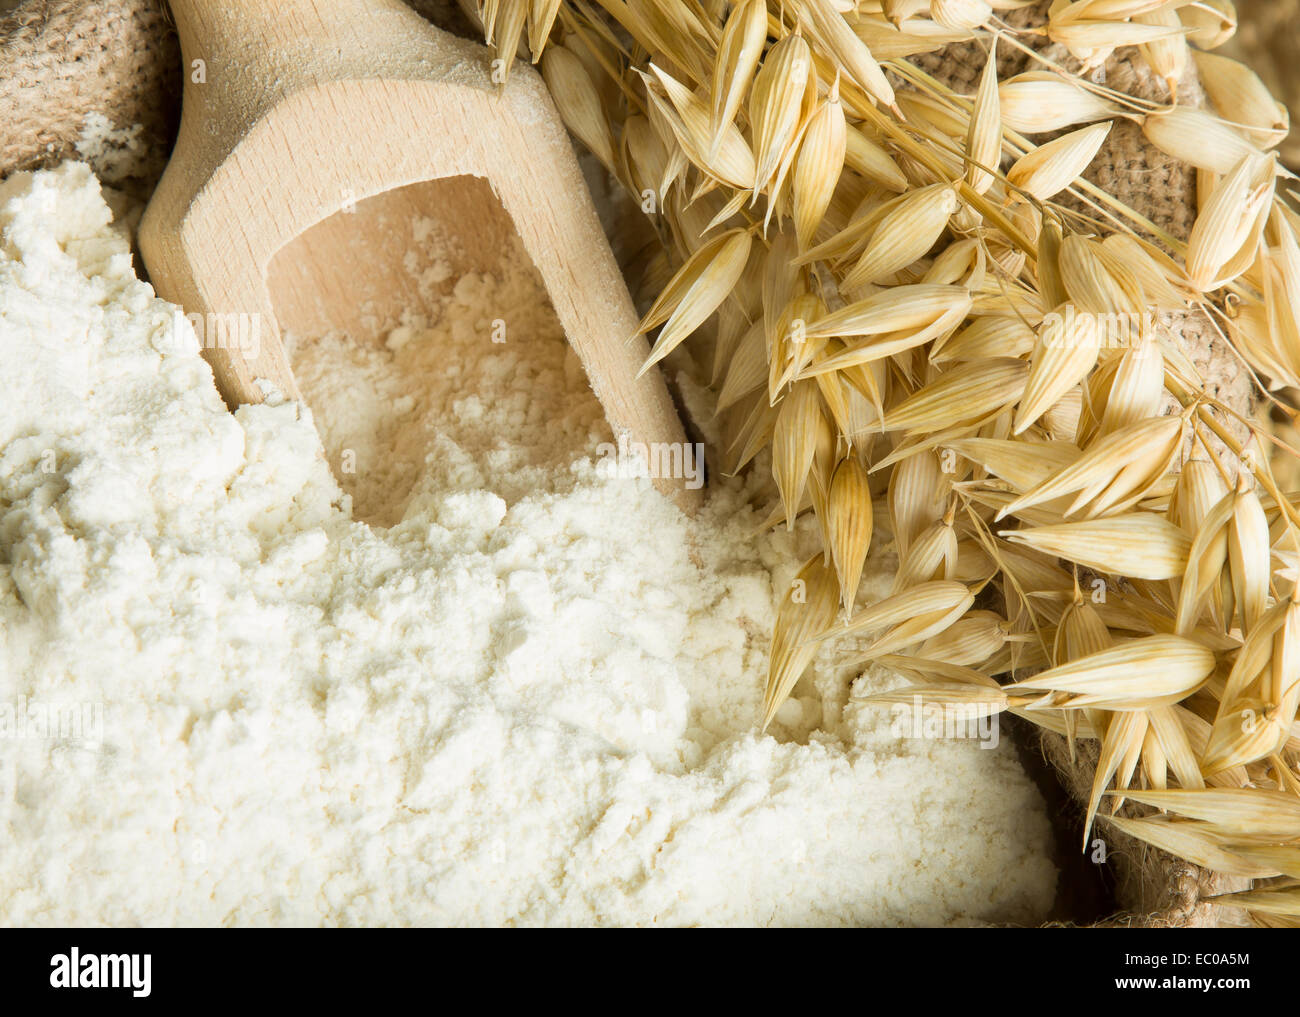 Flour in burlap bag and oat ears - Stock Image